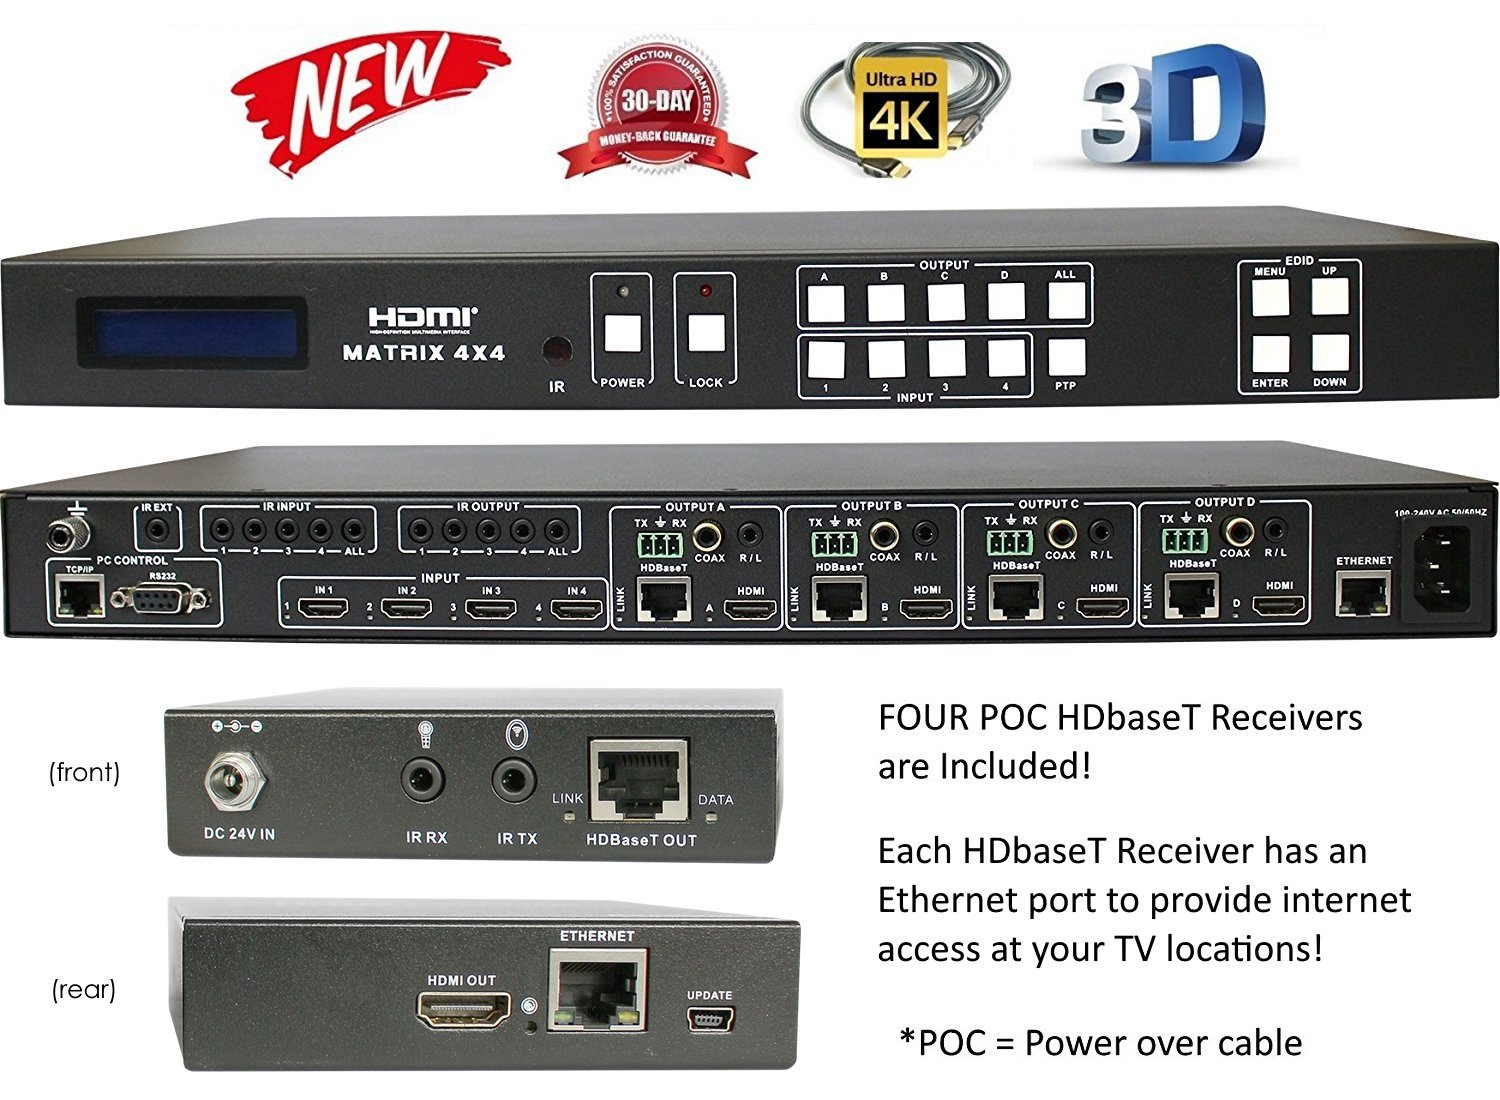 4x8 4x4 HDbaseT 4K HDMI MATRIX SWITCHER w/ FOUR ETHERNET PoC RECEIVERS (CAT5e or CAT6). HDCP2.2 HDTV ROUTING 100M SELECTOR SPDIF AUDIO CRESTRON CONTROL4 SAVANT HOME AUTOMATION INTERNET